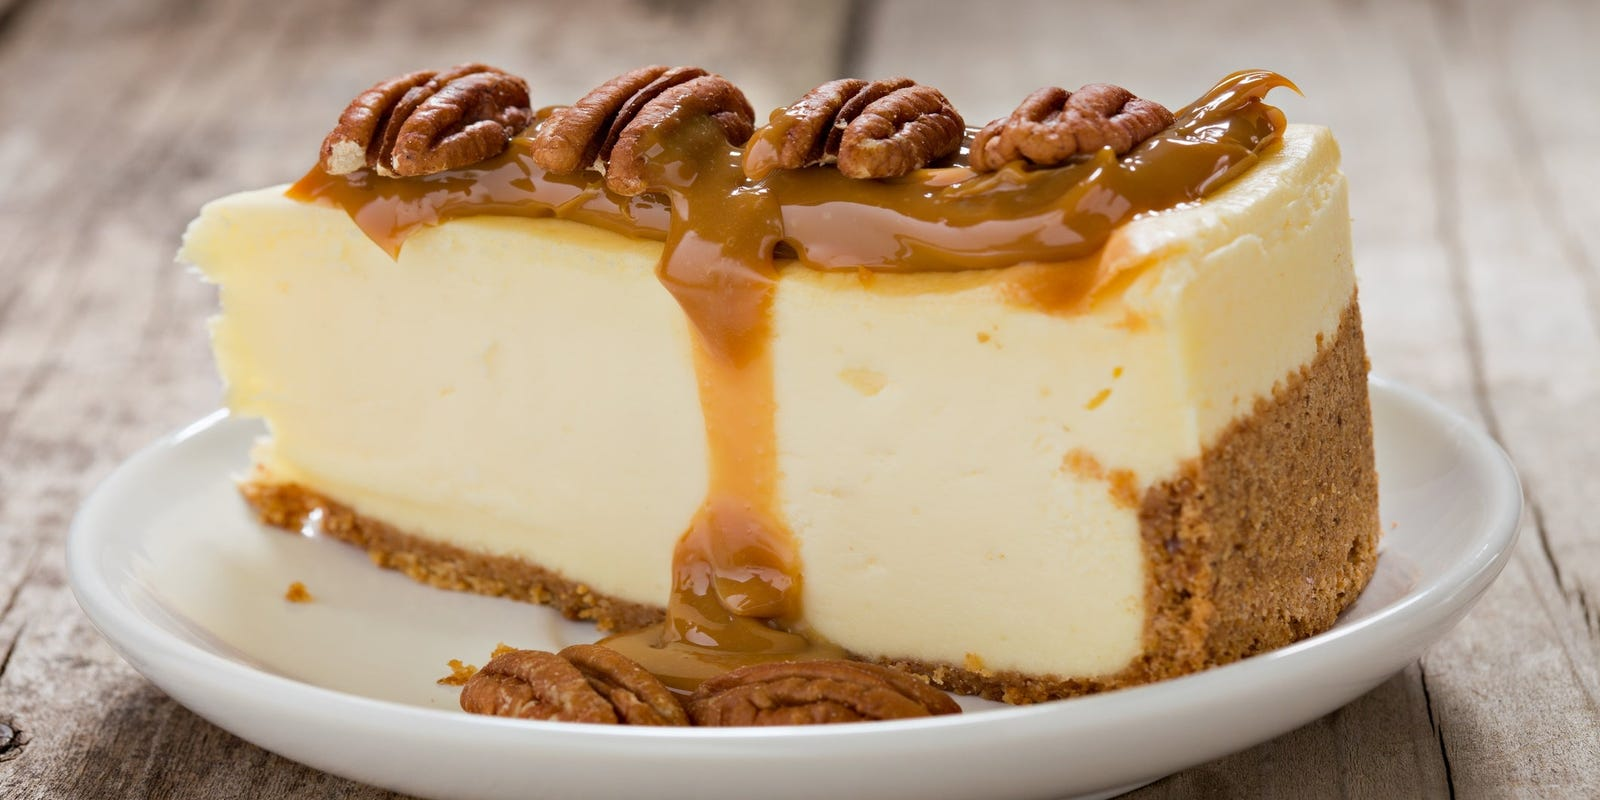 Skyline Chili just got a whole lot sweeter with new dessert from The Cheesecake Factory